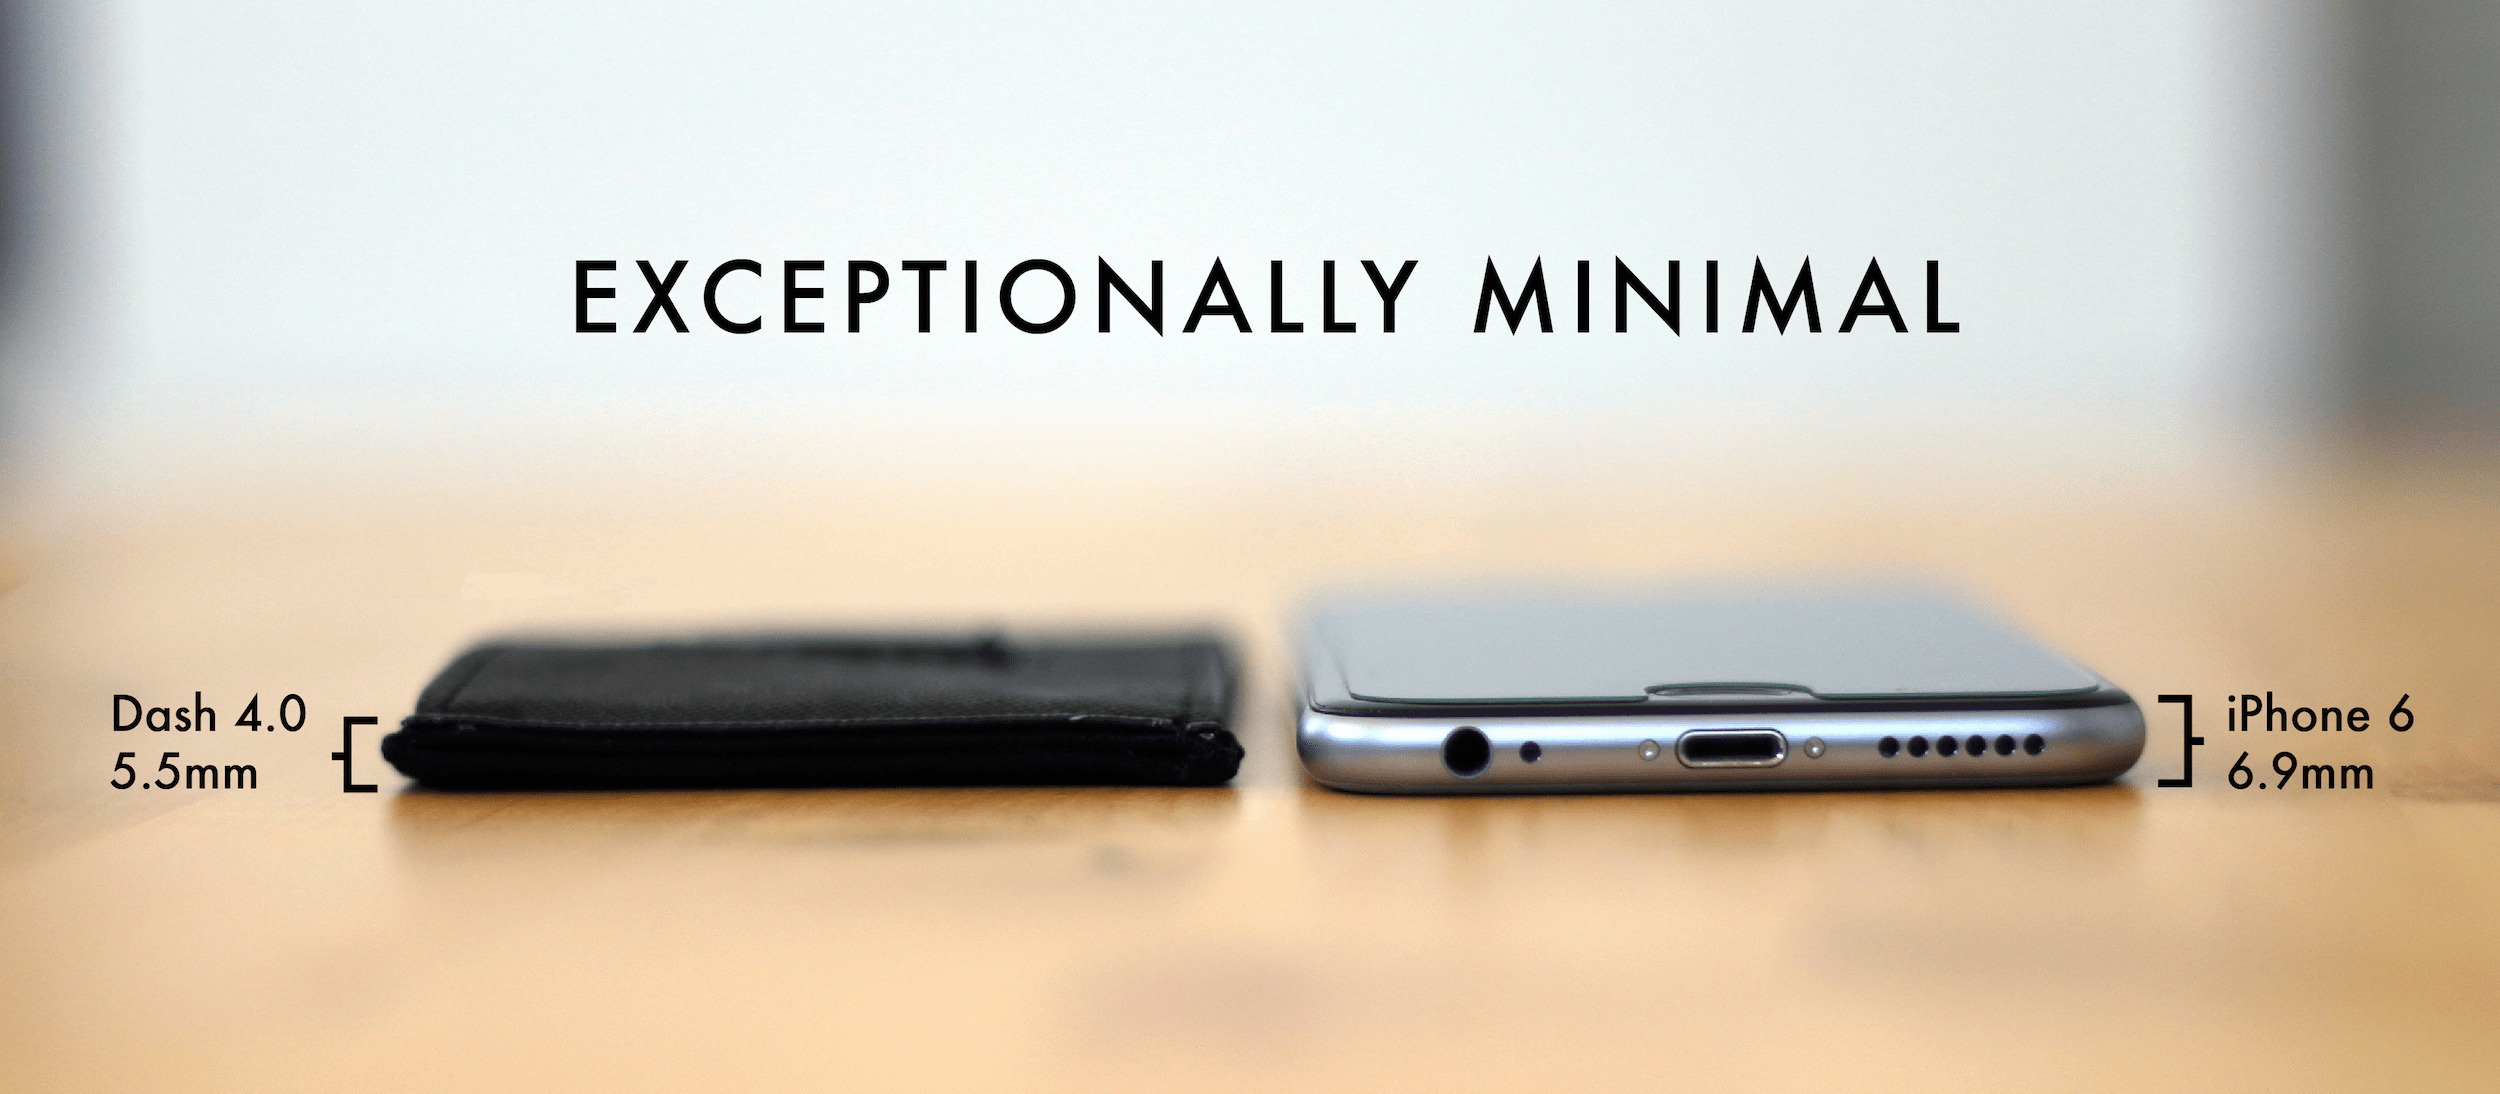 Exceptionally Minimal wallets